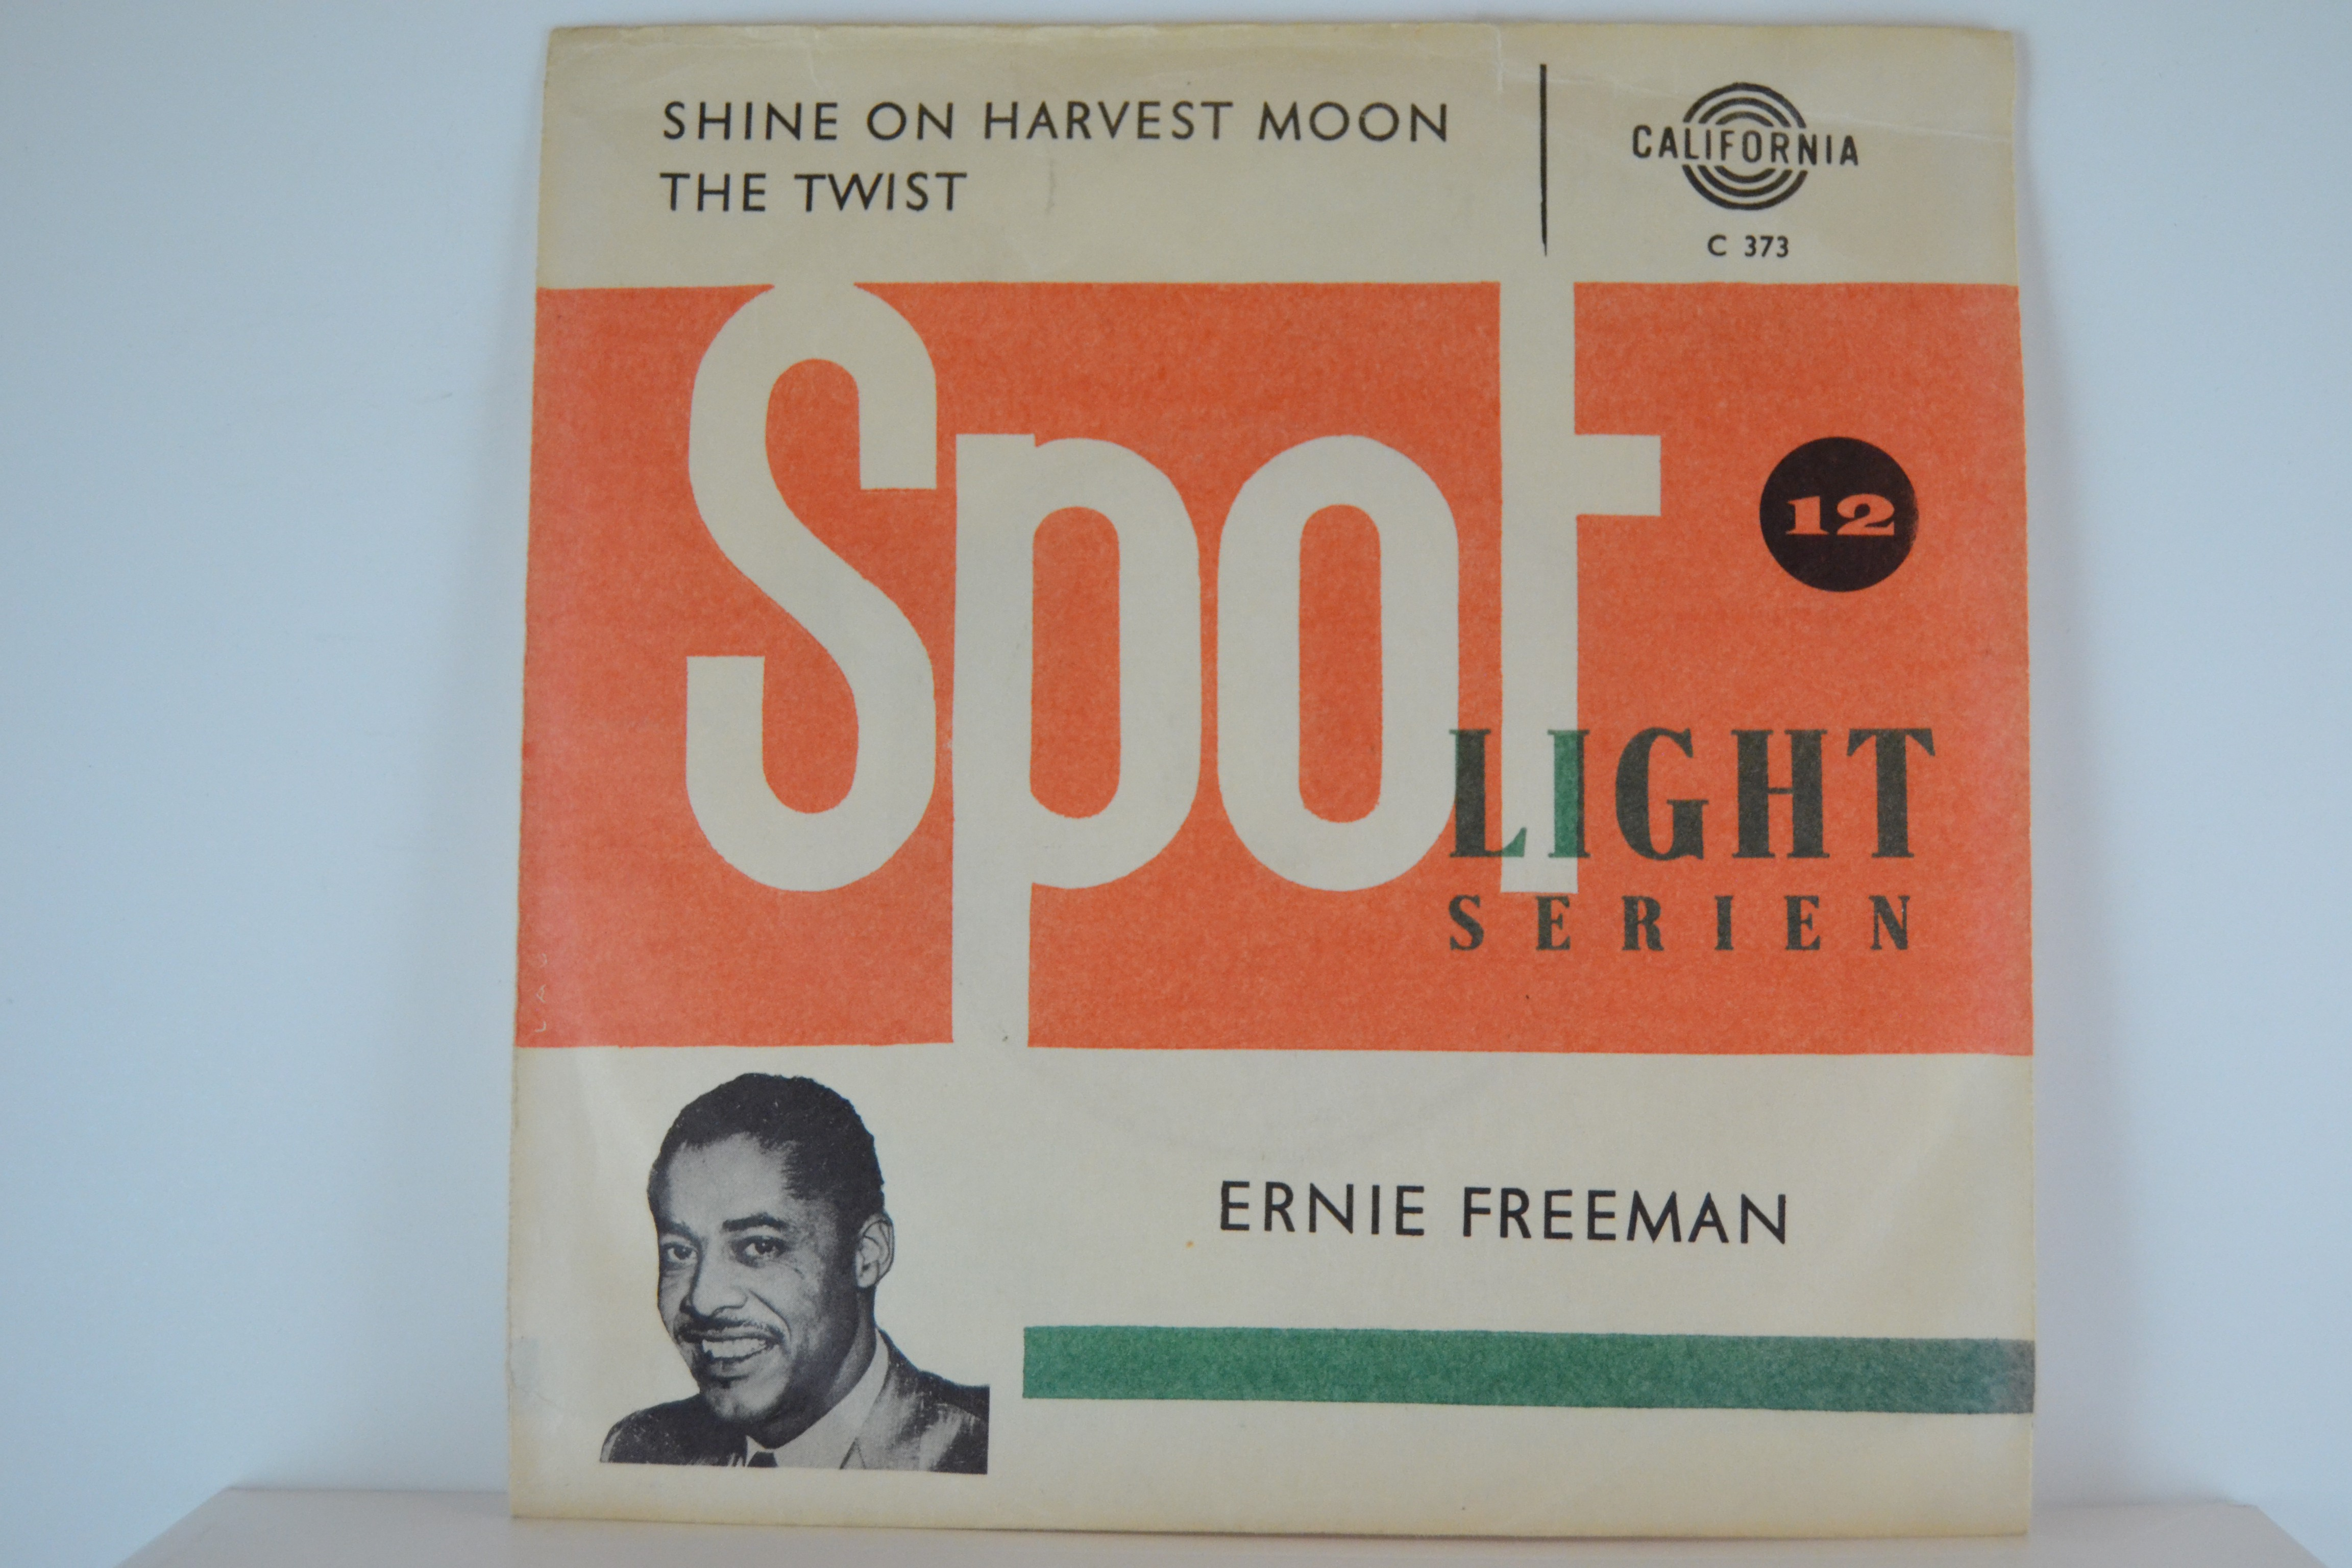 ERNIE FREEMAN : Shine on the harvest moon / The twist